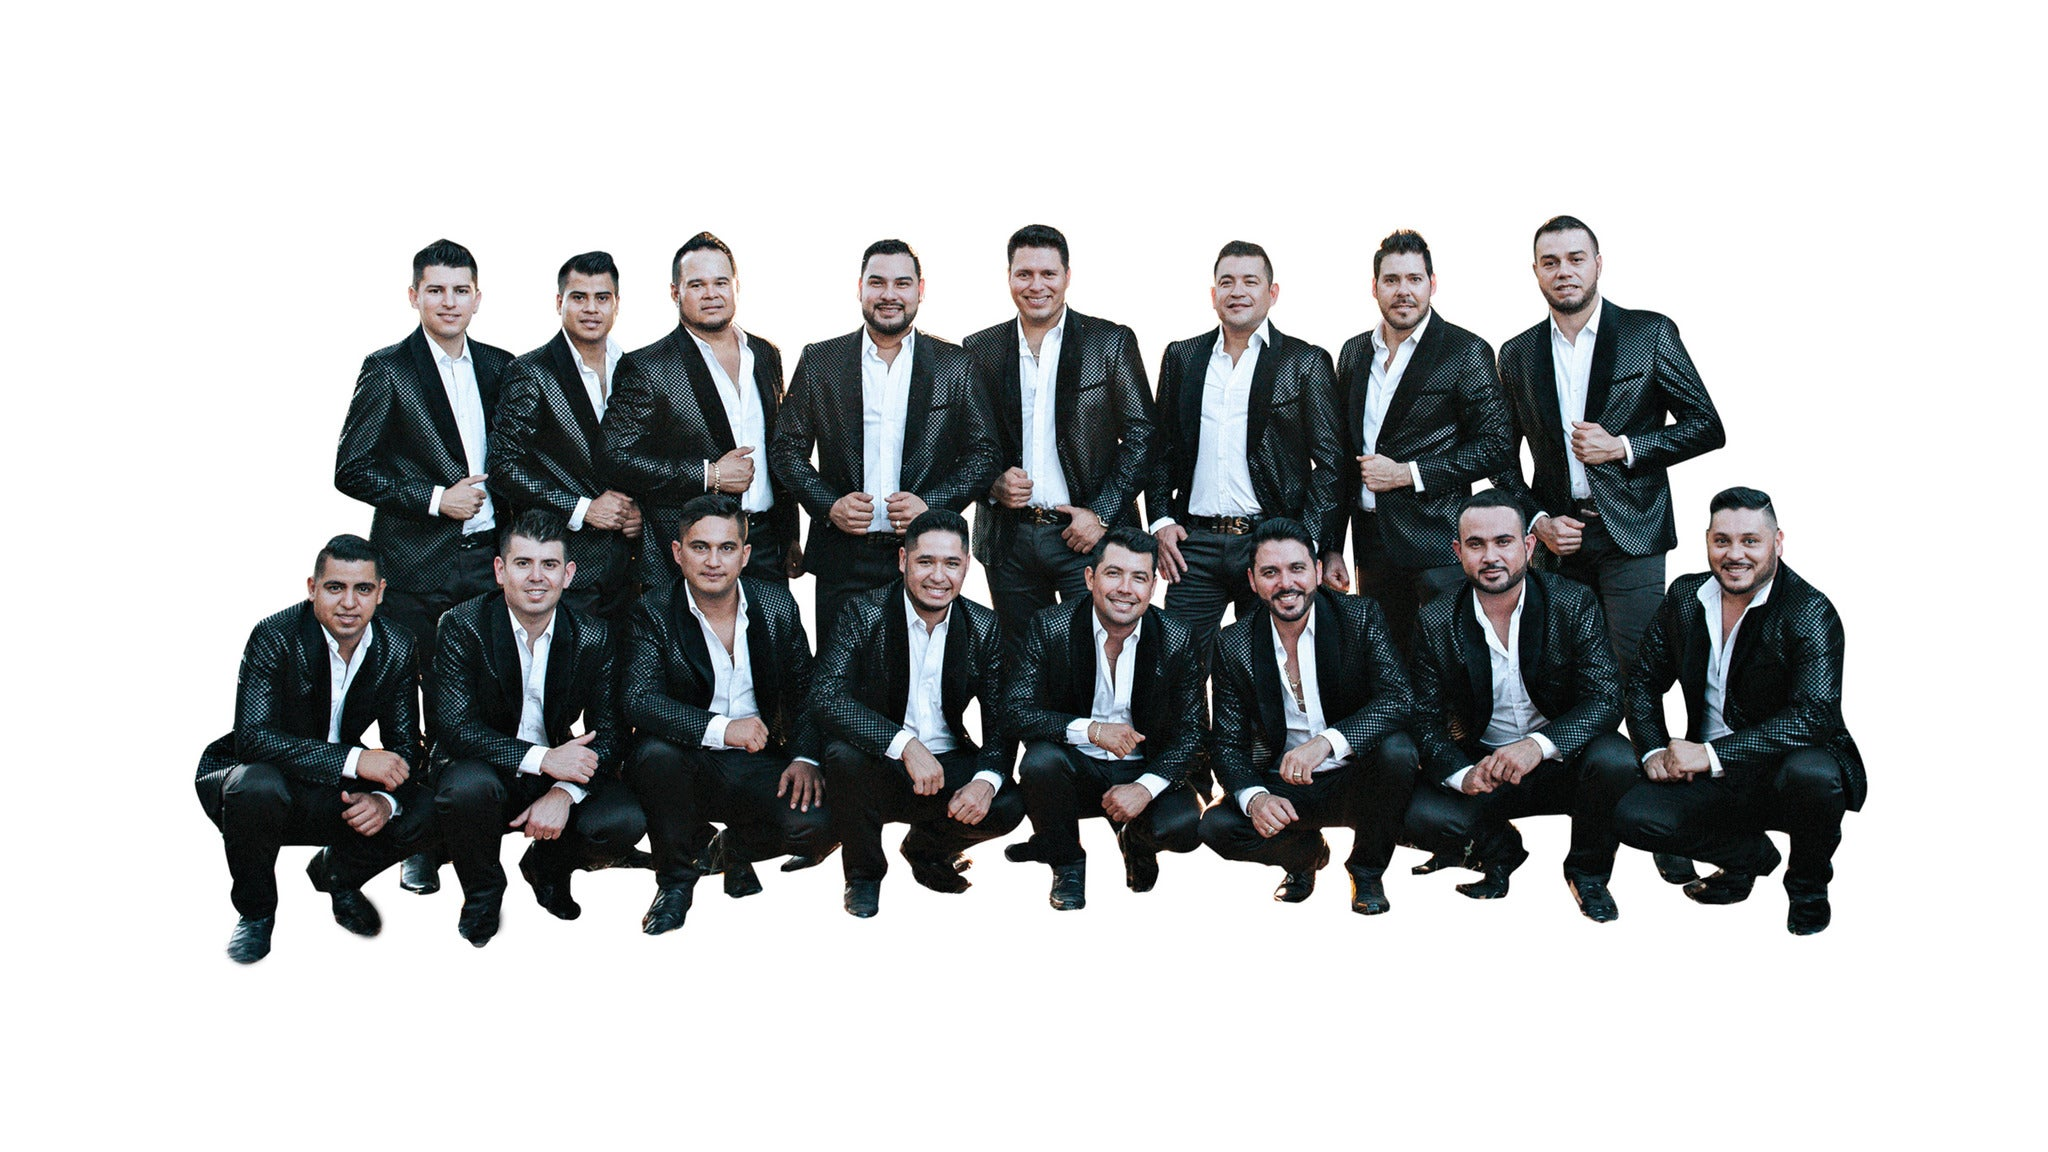 Banda MS de Sergio Lizarraga at Stockton Arena